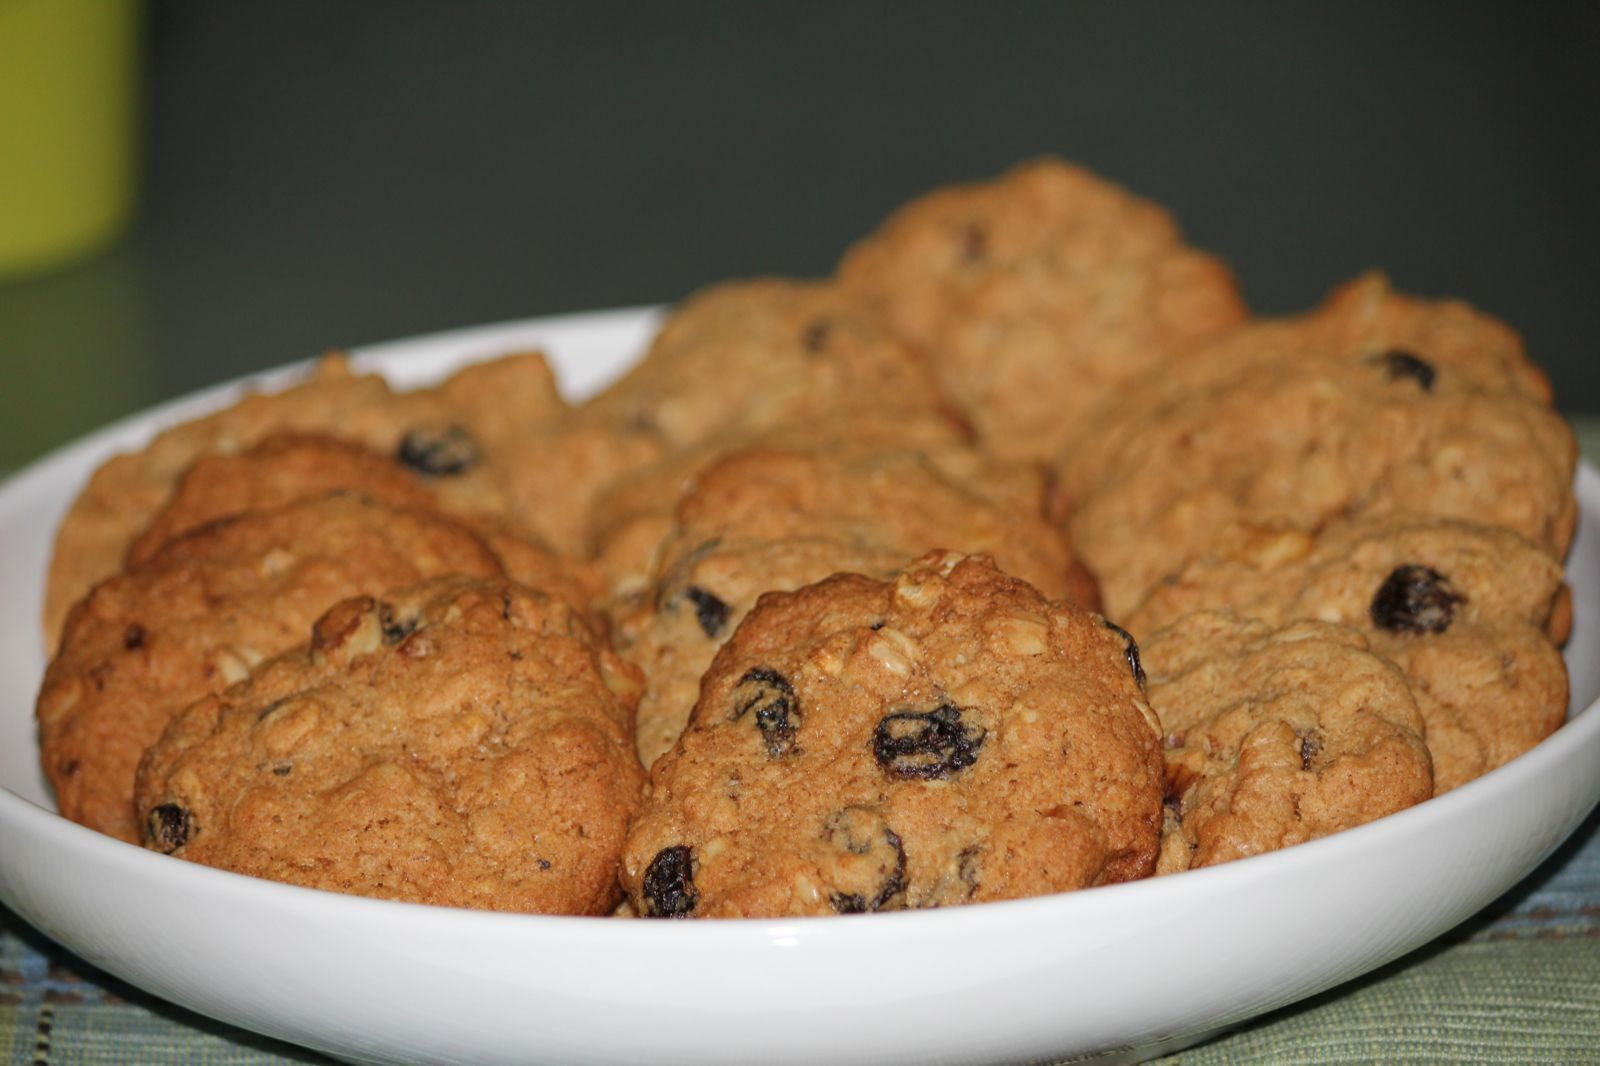 Oatmeal Raisin cookies with a twist